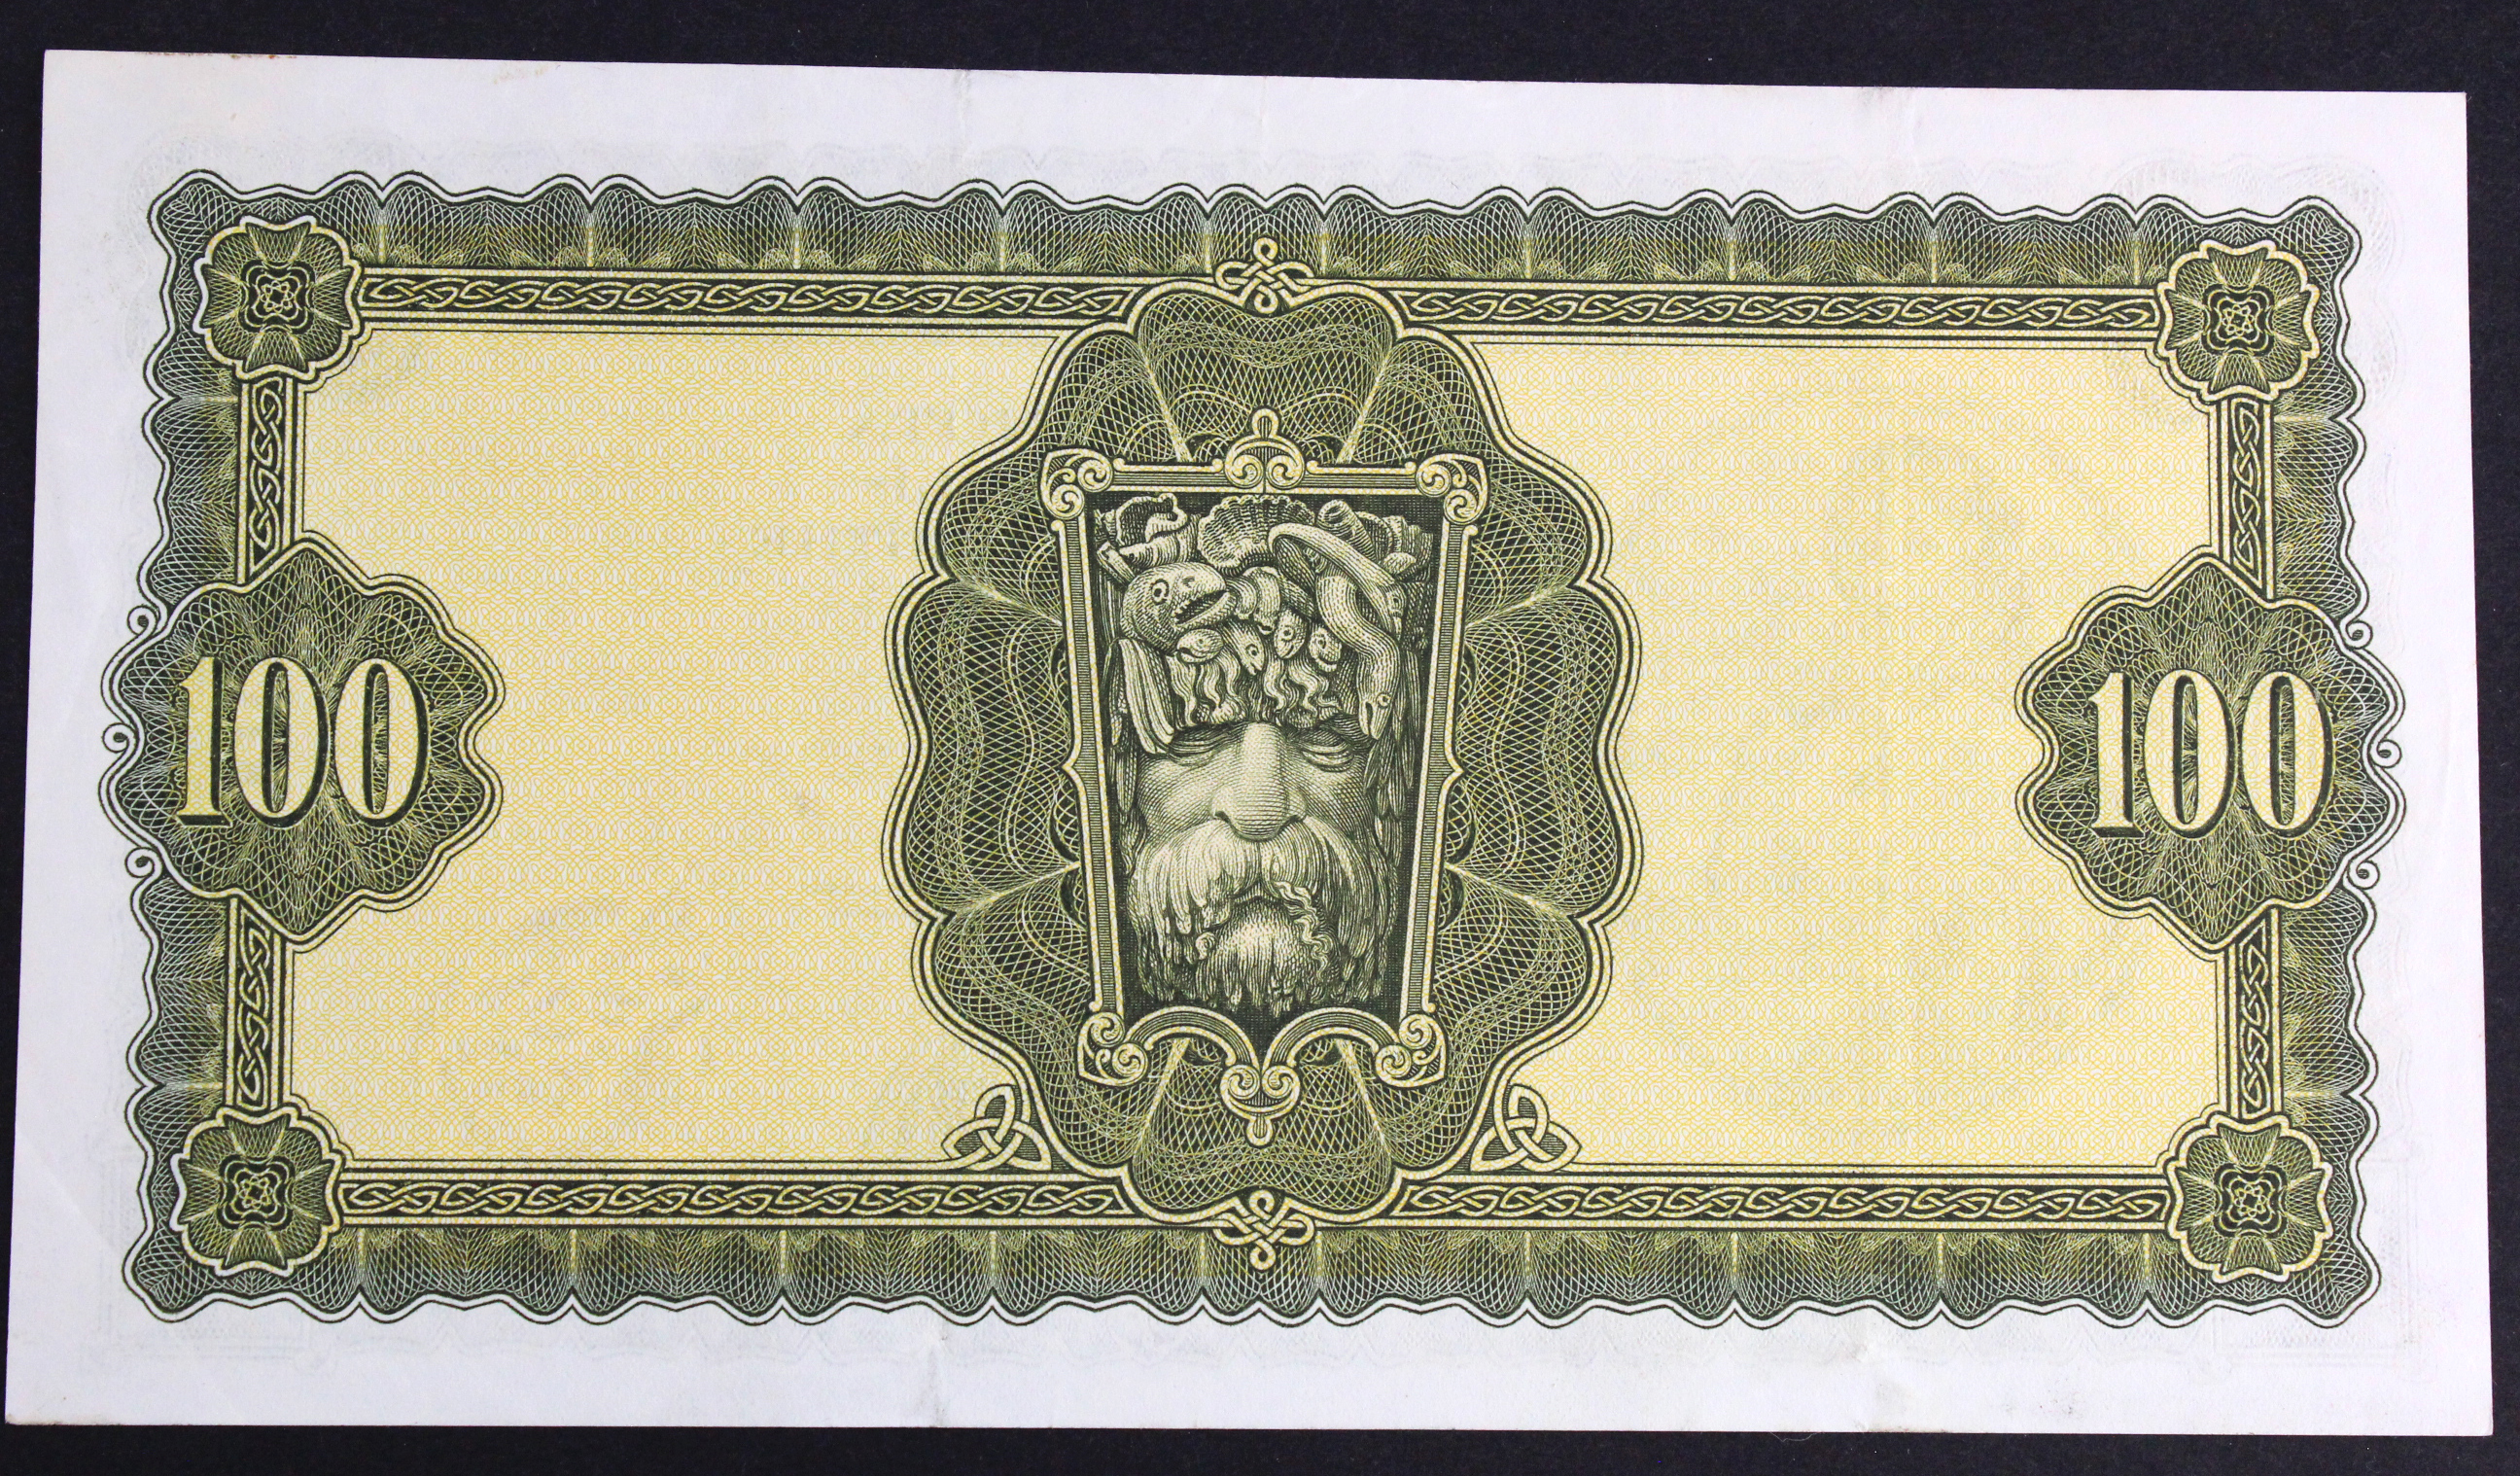 Ireland Republic 100 Pounds dated 10th April 1975, Lady Lavery portrait at left, signed Whitaker & - Image 2 of 2